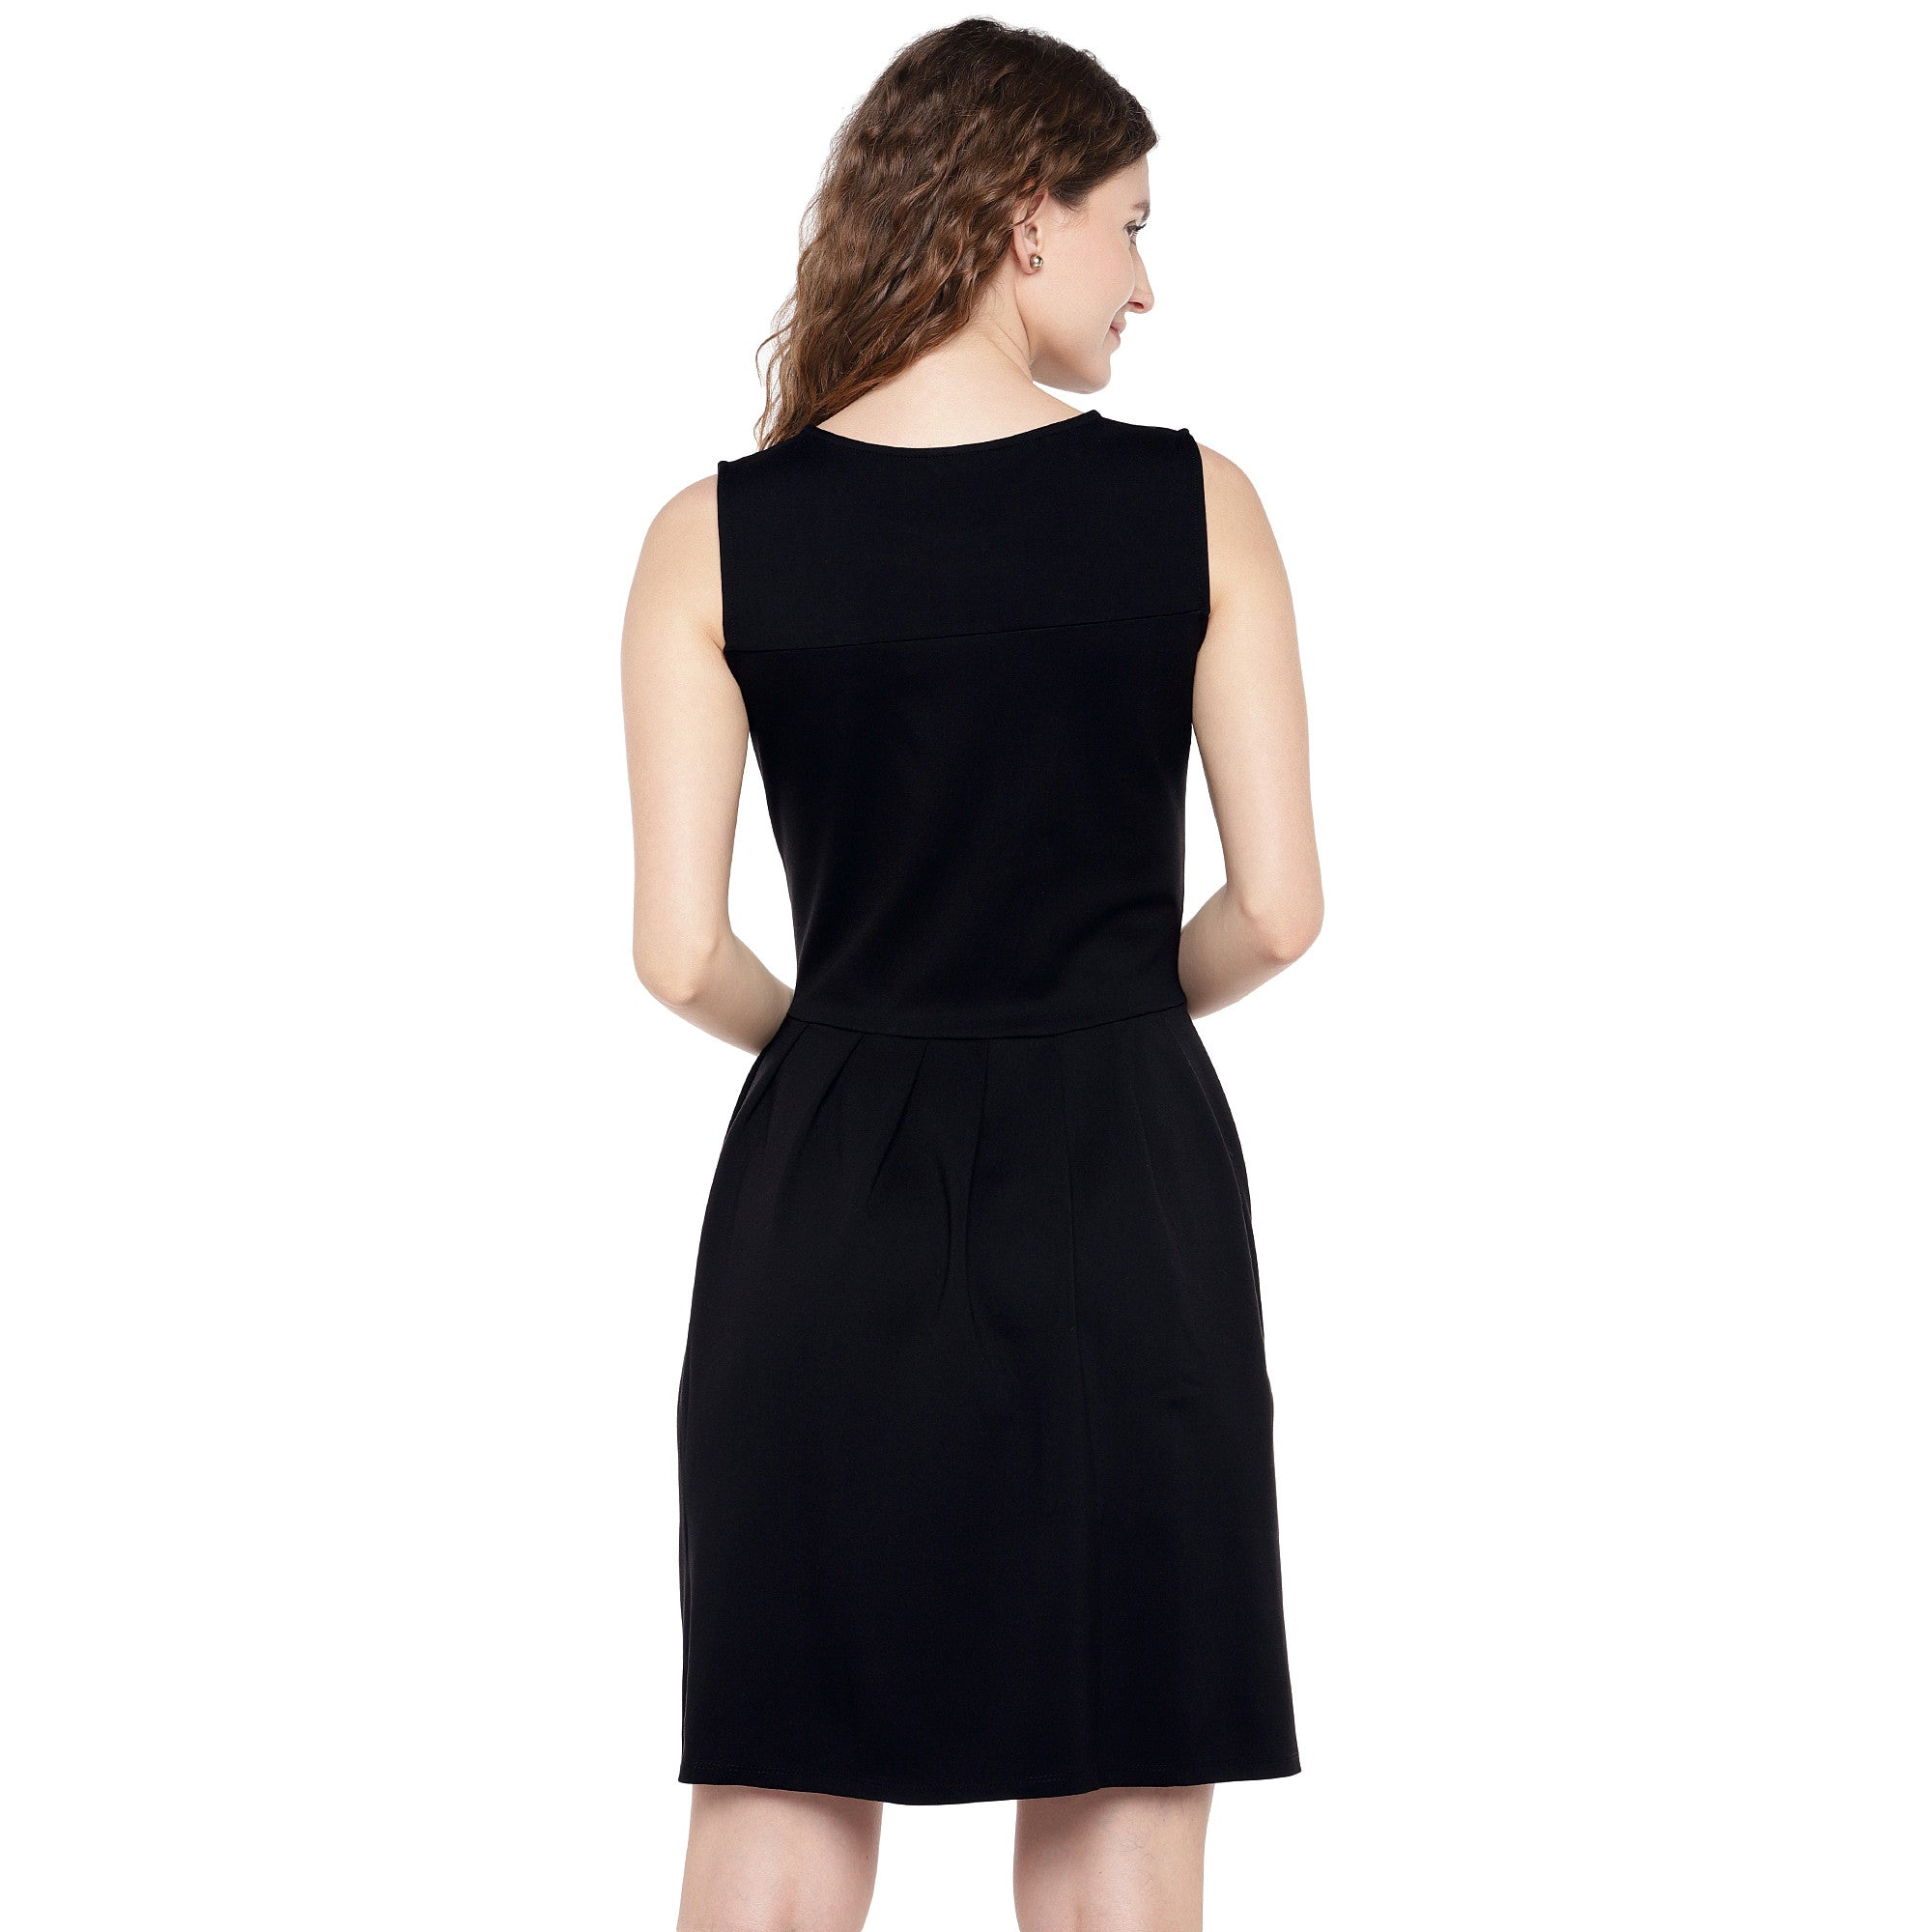 Women Black Solid A-Line Dress-3